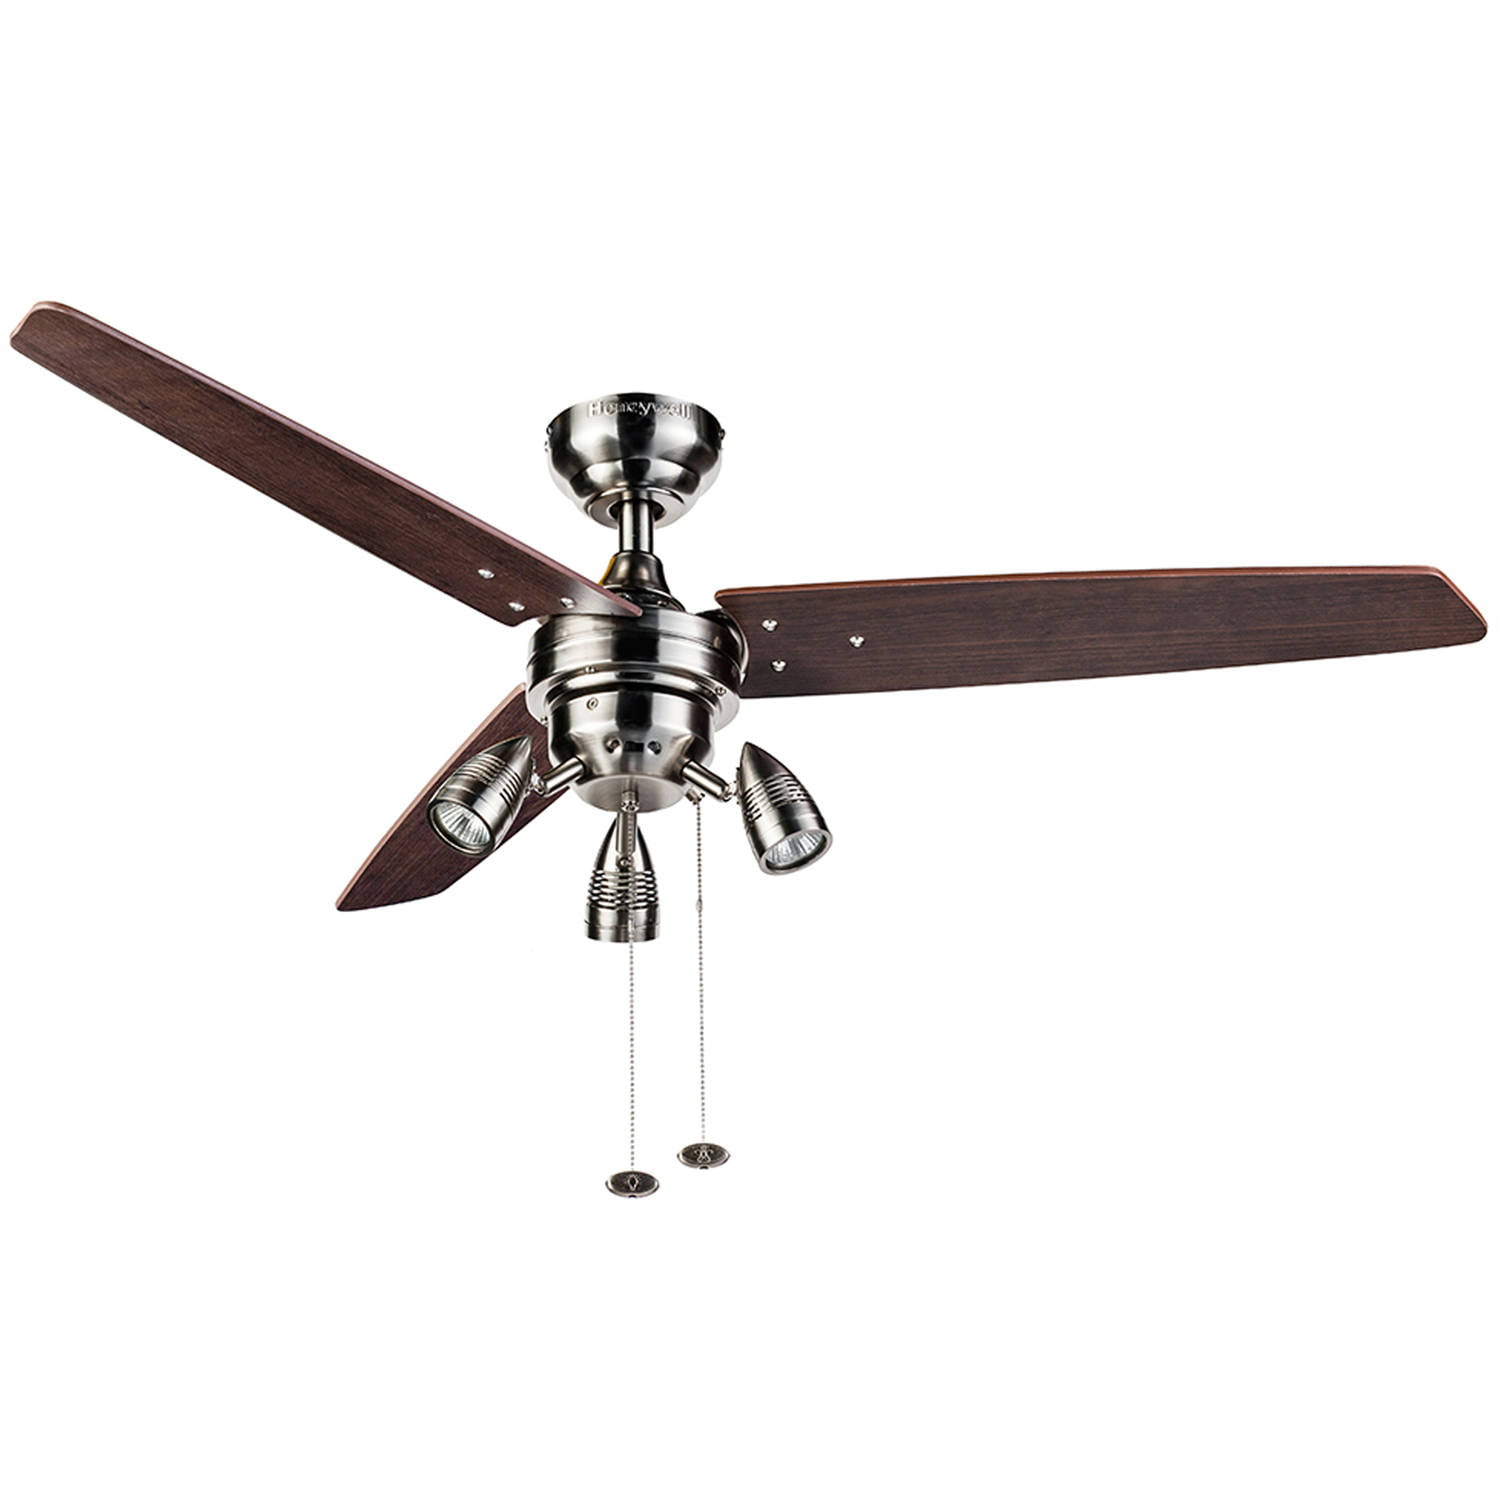 48 honeywell wicker park ceiling fan satin nickel walmart aloadofball Image collections